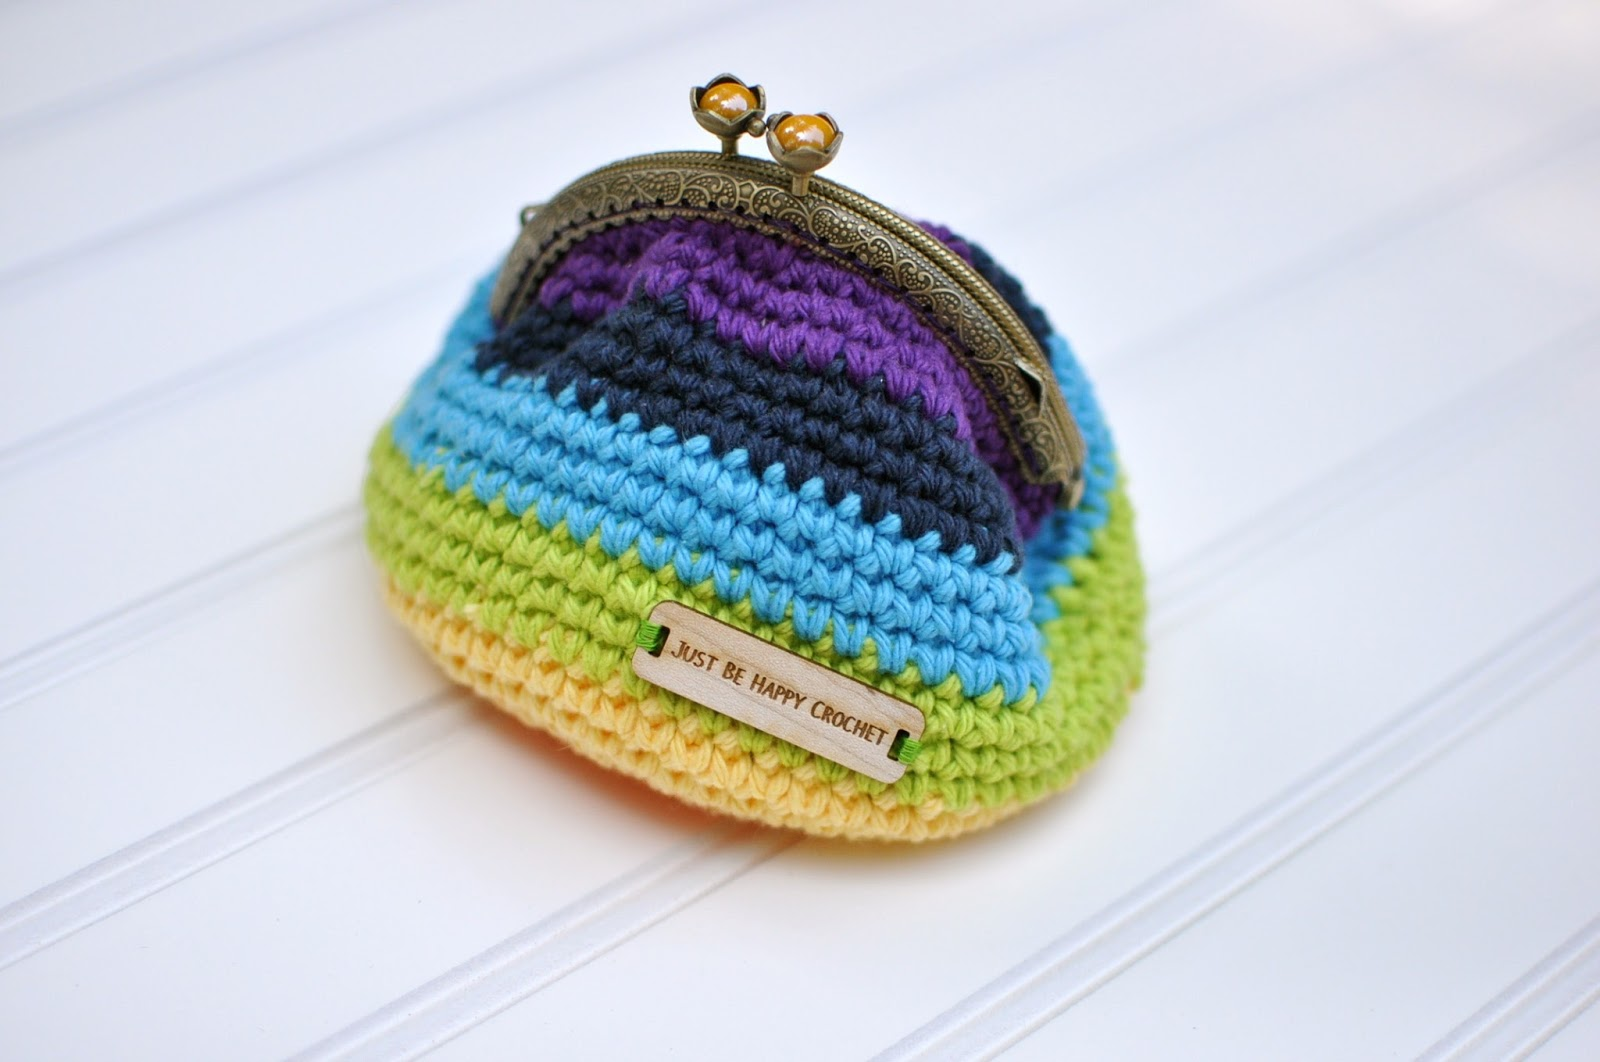 Crochet Coin Purse Pattern : Just be happy!: Coin Purse {Free Pattern}